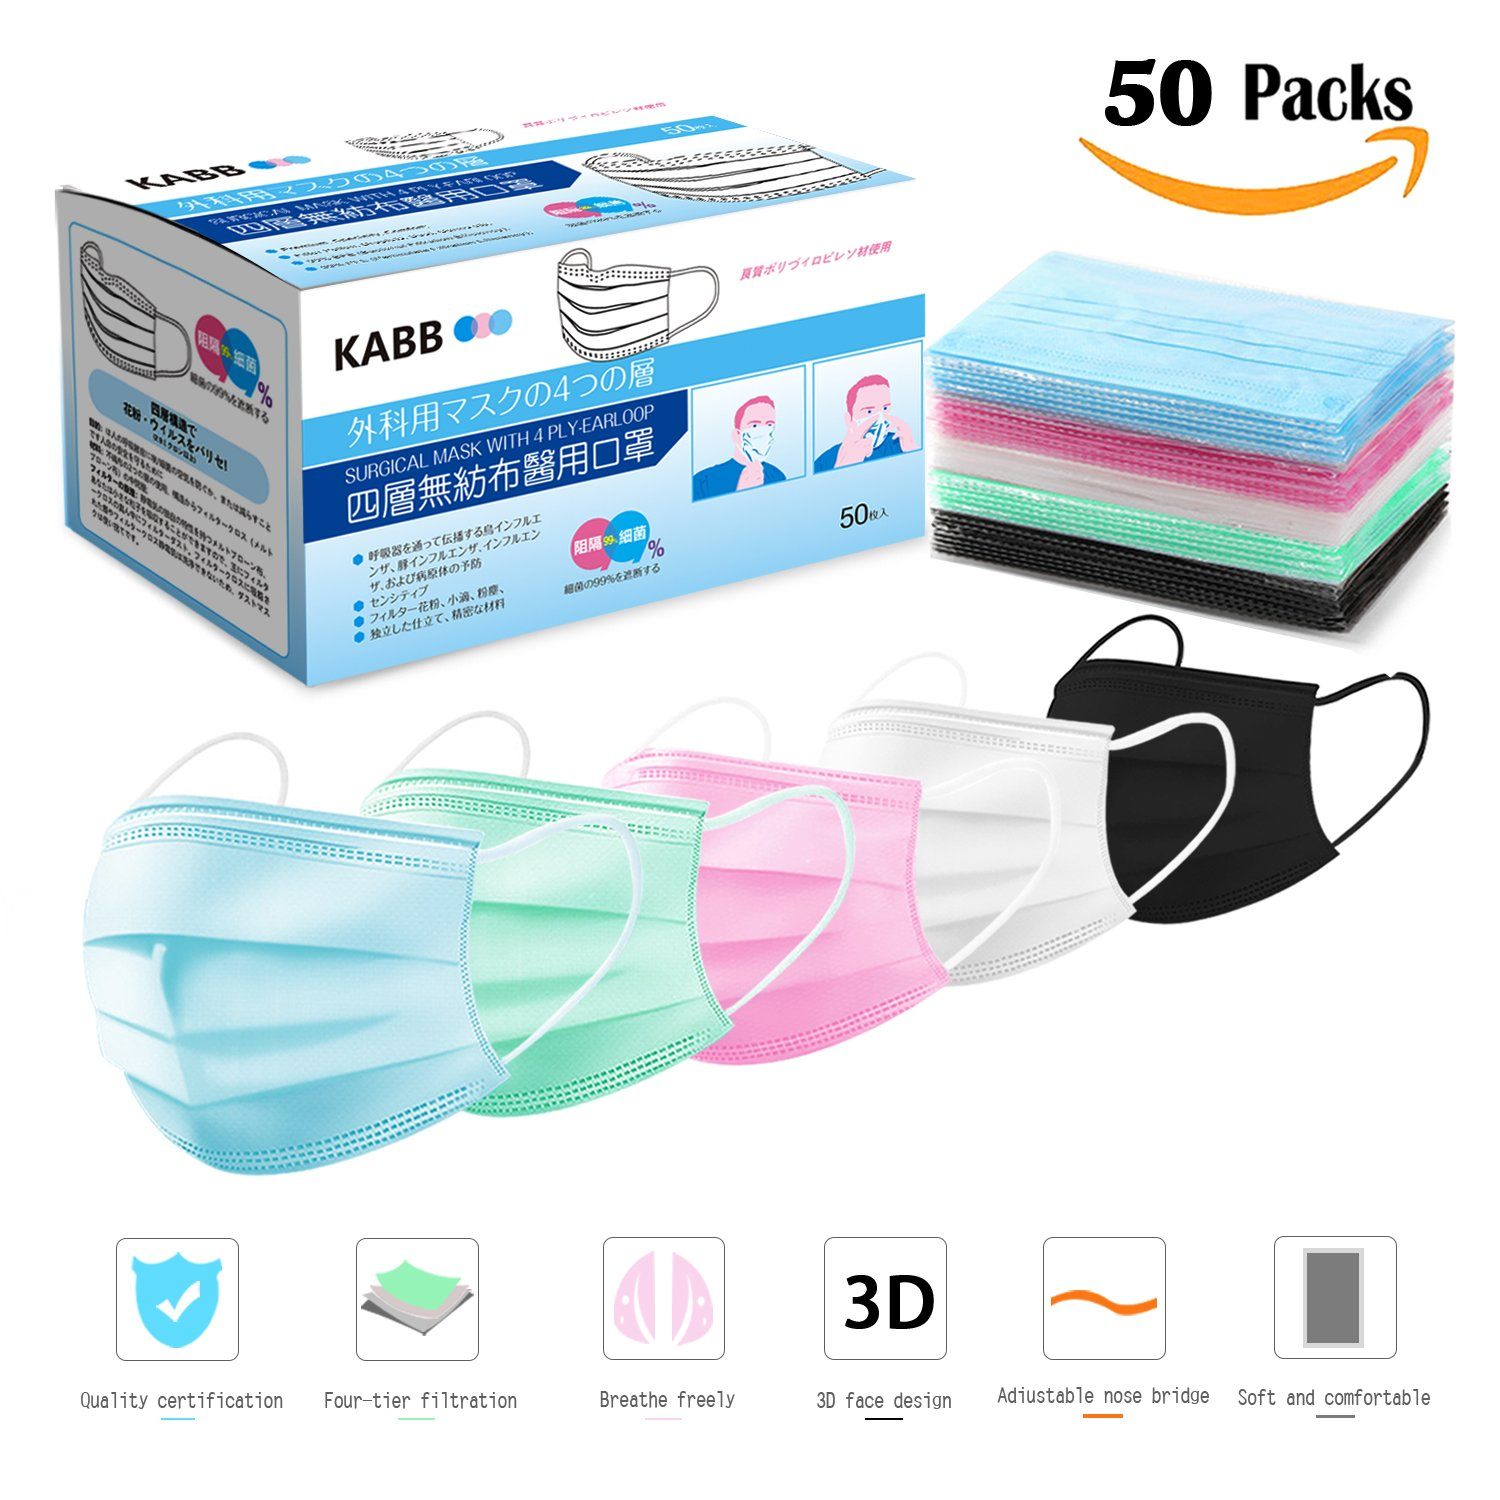 Disposable face mask, KABB Earloop Face Masks, 4 Ply Thicker Medical Grade Surgical Mask, Premium Individually Wrapped Procedure Face Mask for Surgical, Allergy, Flu Germs, Dust 50 Pcs (Rainbow Color)